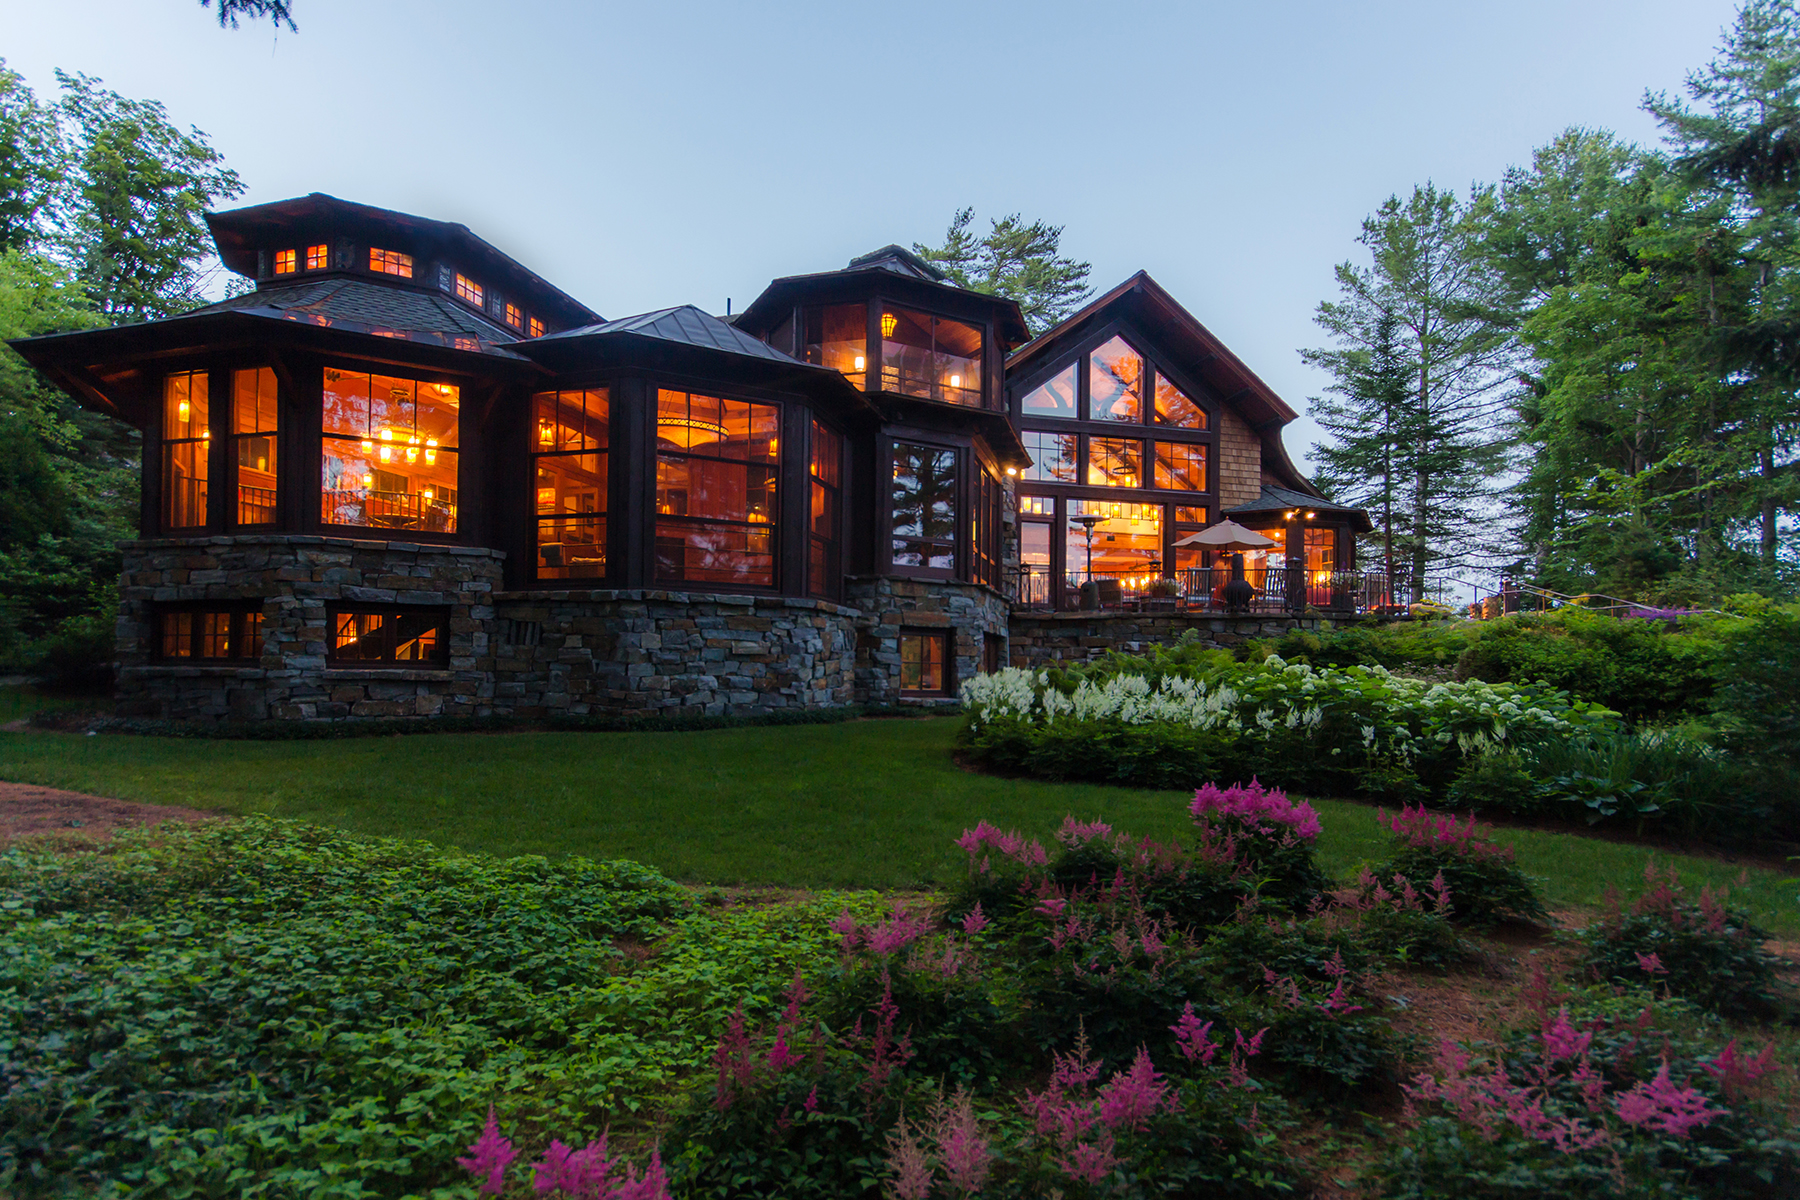 단독 가정 주택 용 매매 에 Most Magnificent Home Available in Lake Placid 134 Mirror Lake Dr Lake Placid, 뉴욕, 12946 미국